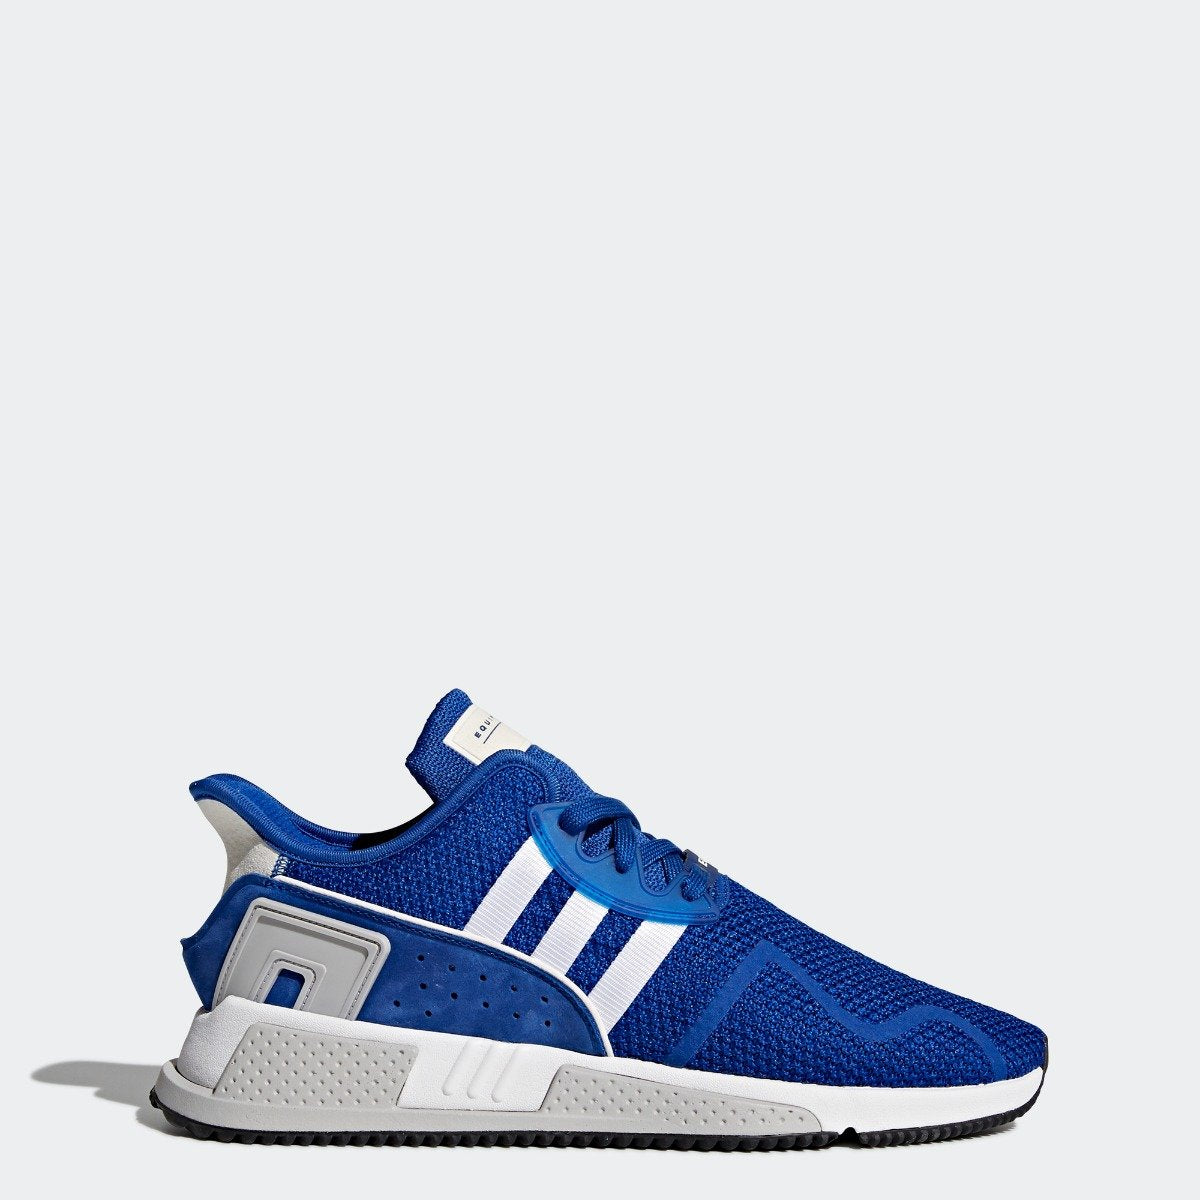 free shipping 1eec0 f36f0 Mens adidas Originals EQT Cushion ADV Shoes Collegiate Royal Blue with  Grey and White